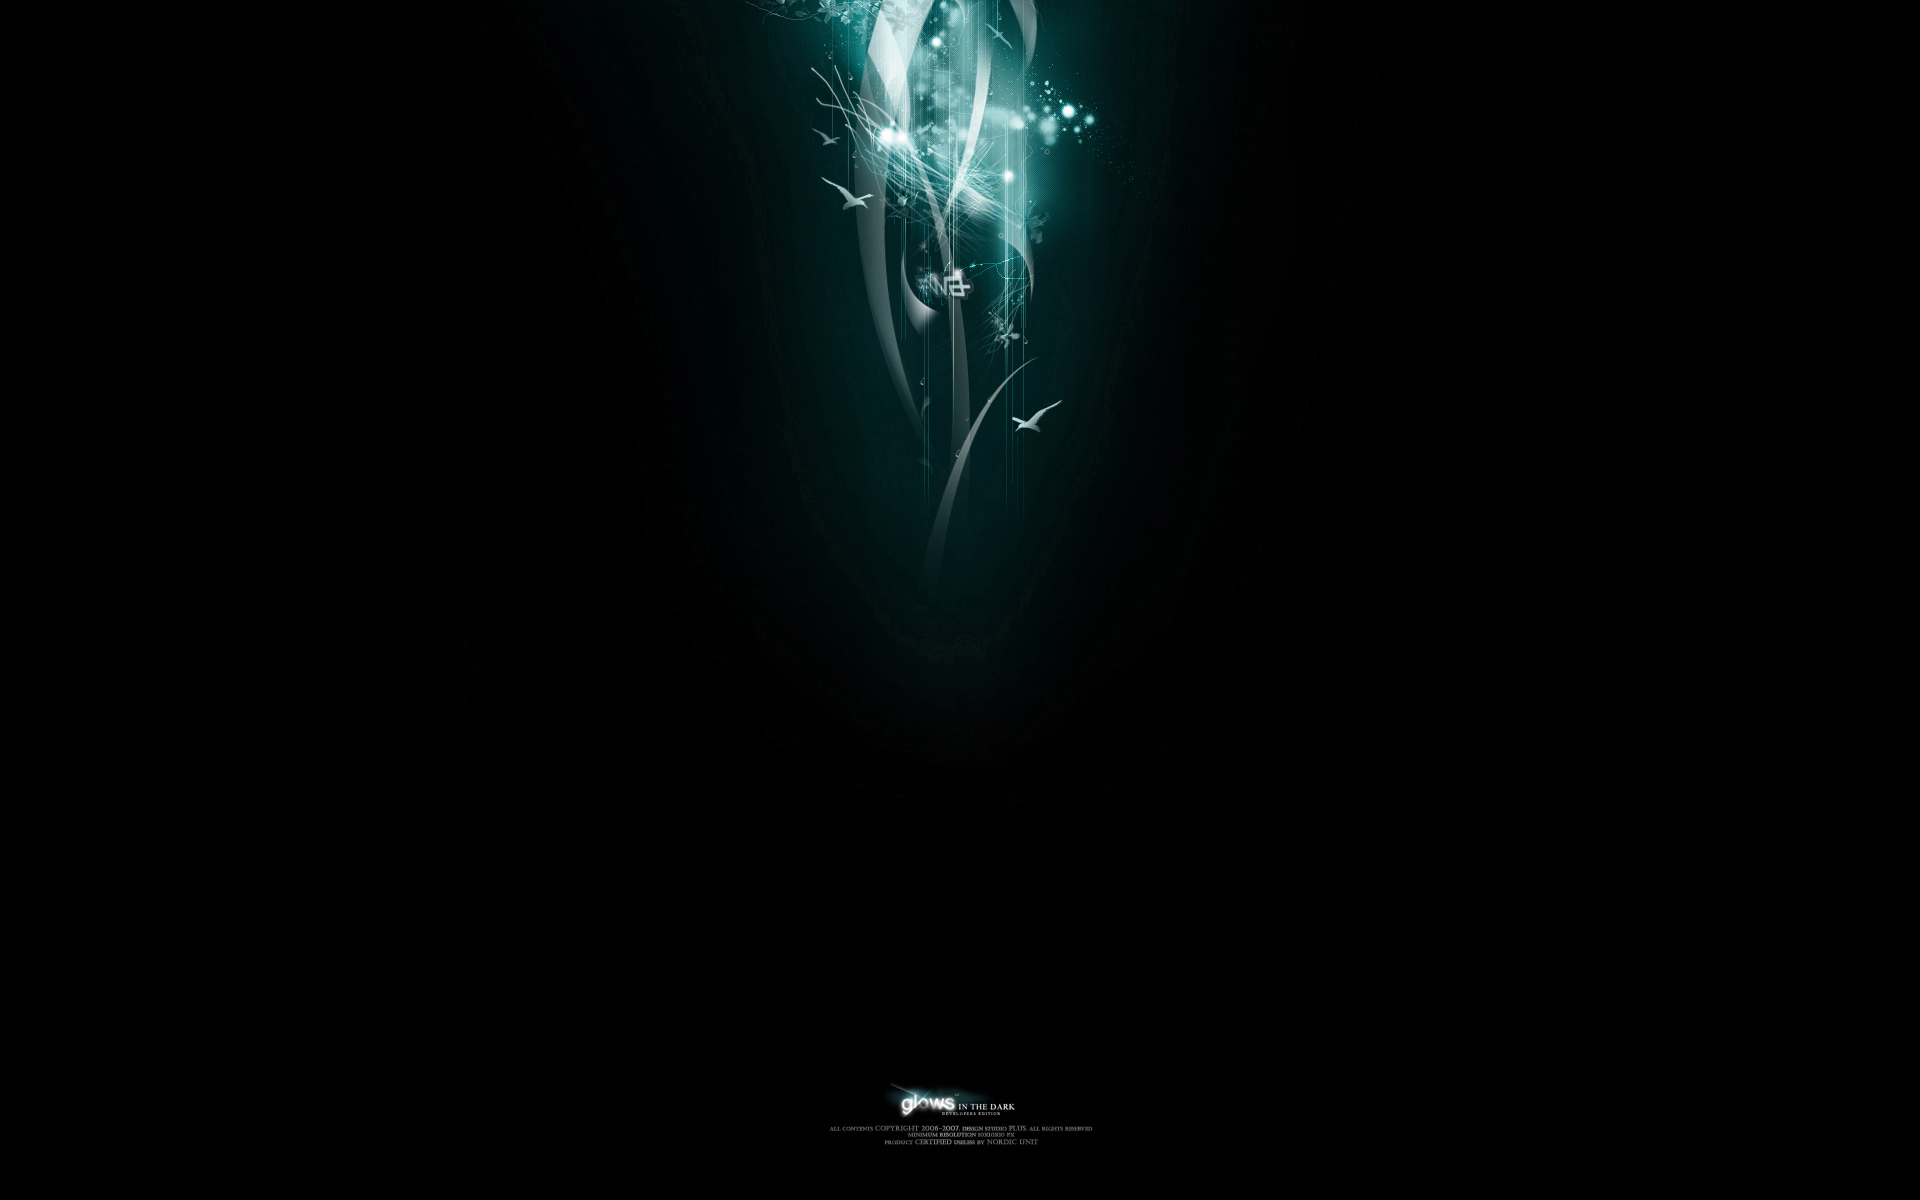 Collection of Dark Backgrounds, Dark 100% Quality HD Wallpapers